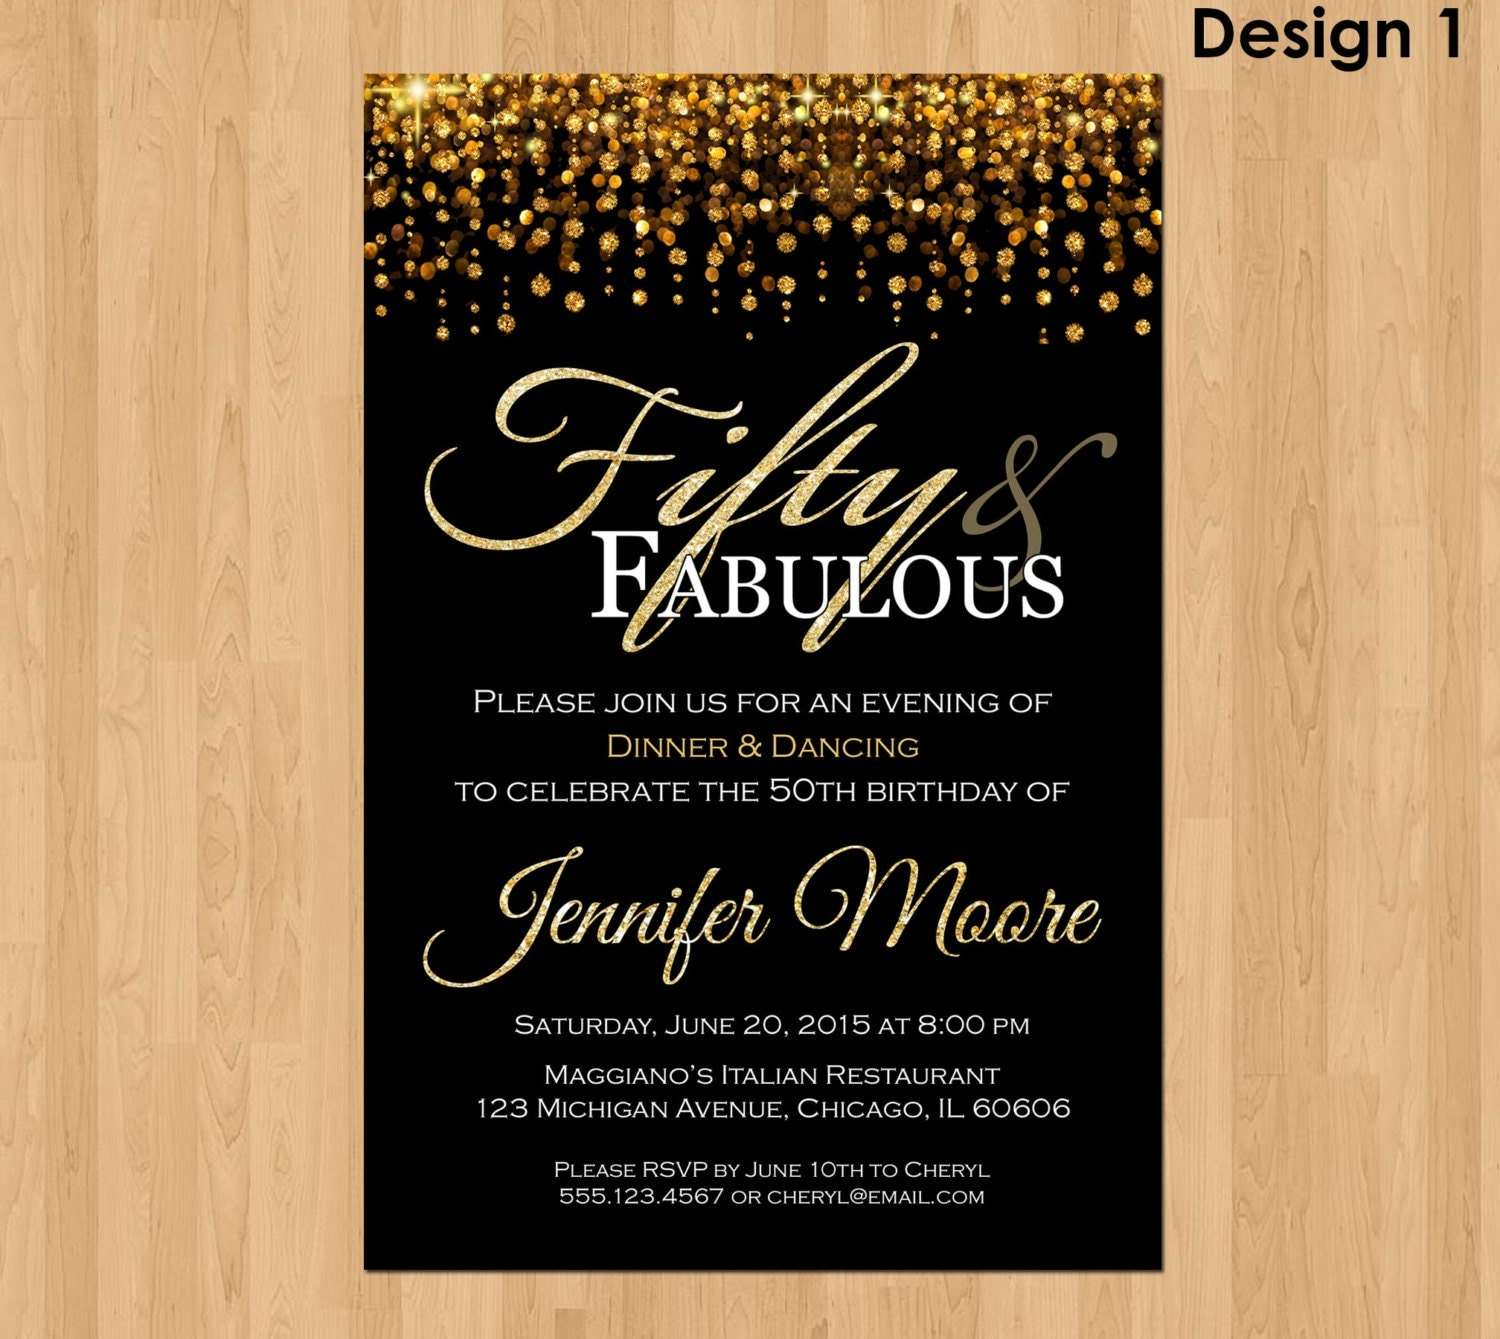 th Birthday Invitation for Women and Fabulous